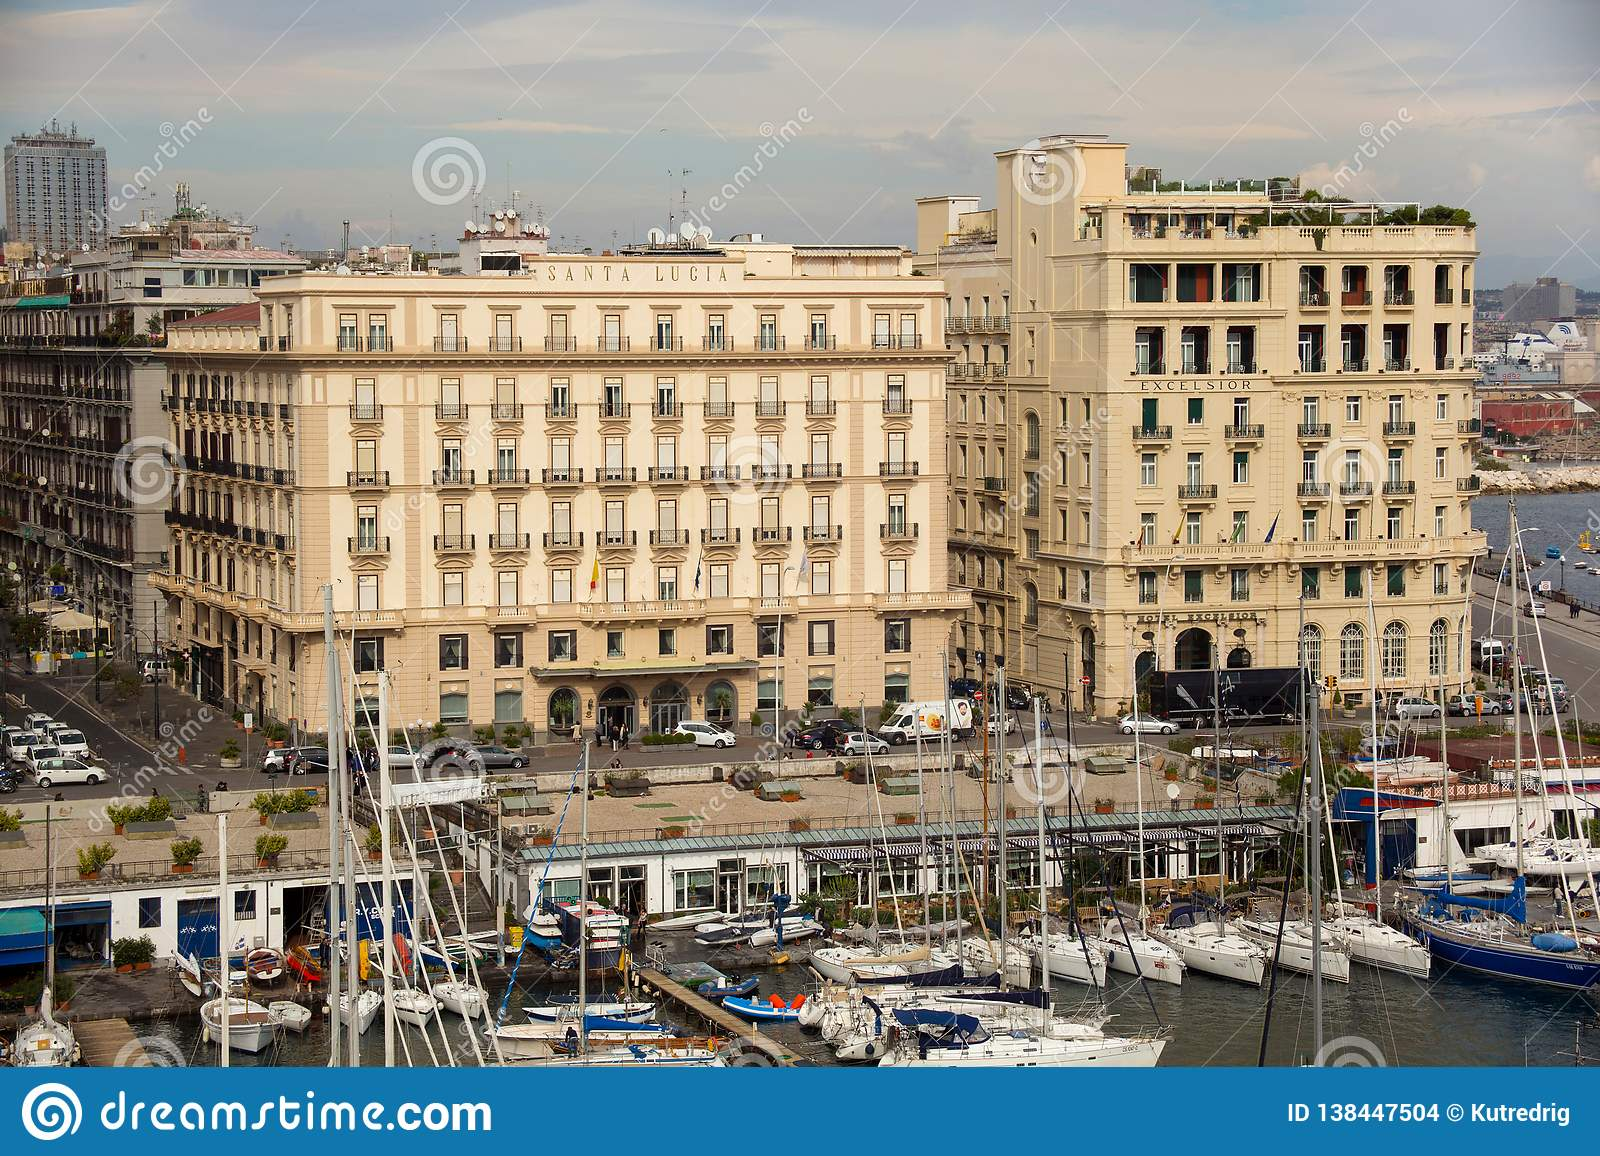 NAPLES, ITALY - OCTOBER 31, 2015: Air view of the Grand Hotel Santa Lucia and Hotel Excelsior in historical center of Naples.